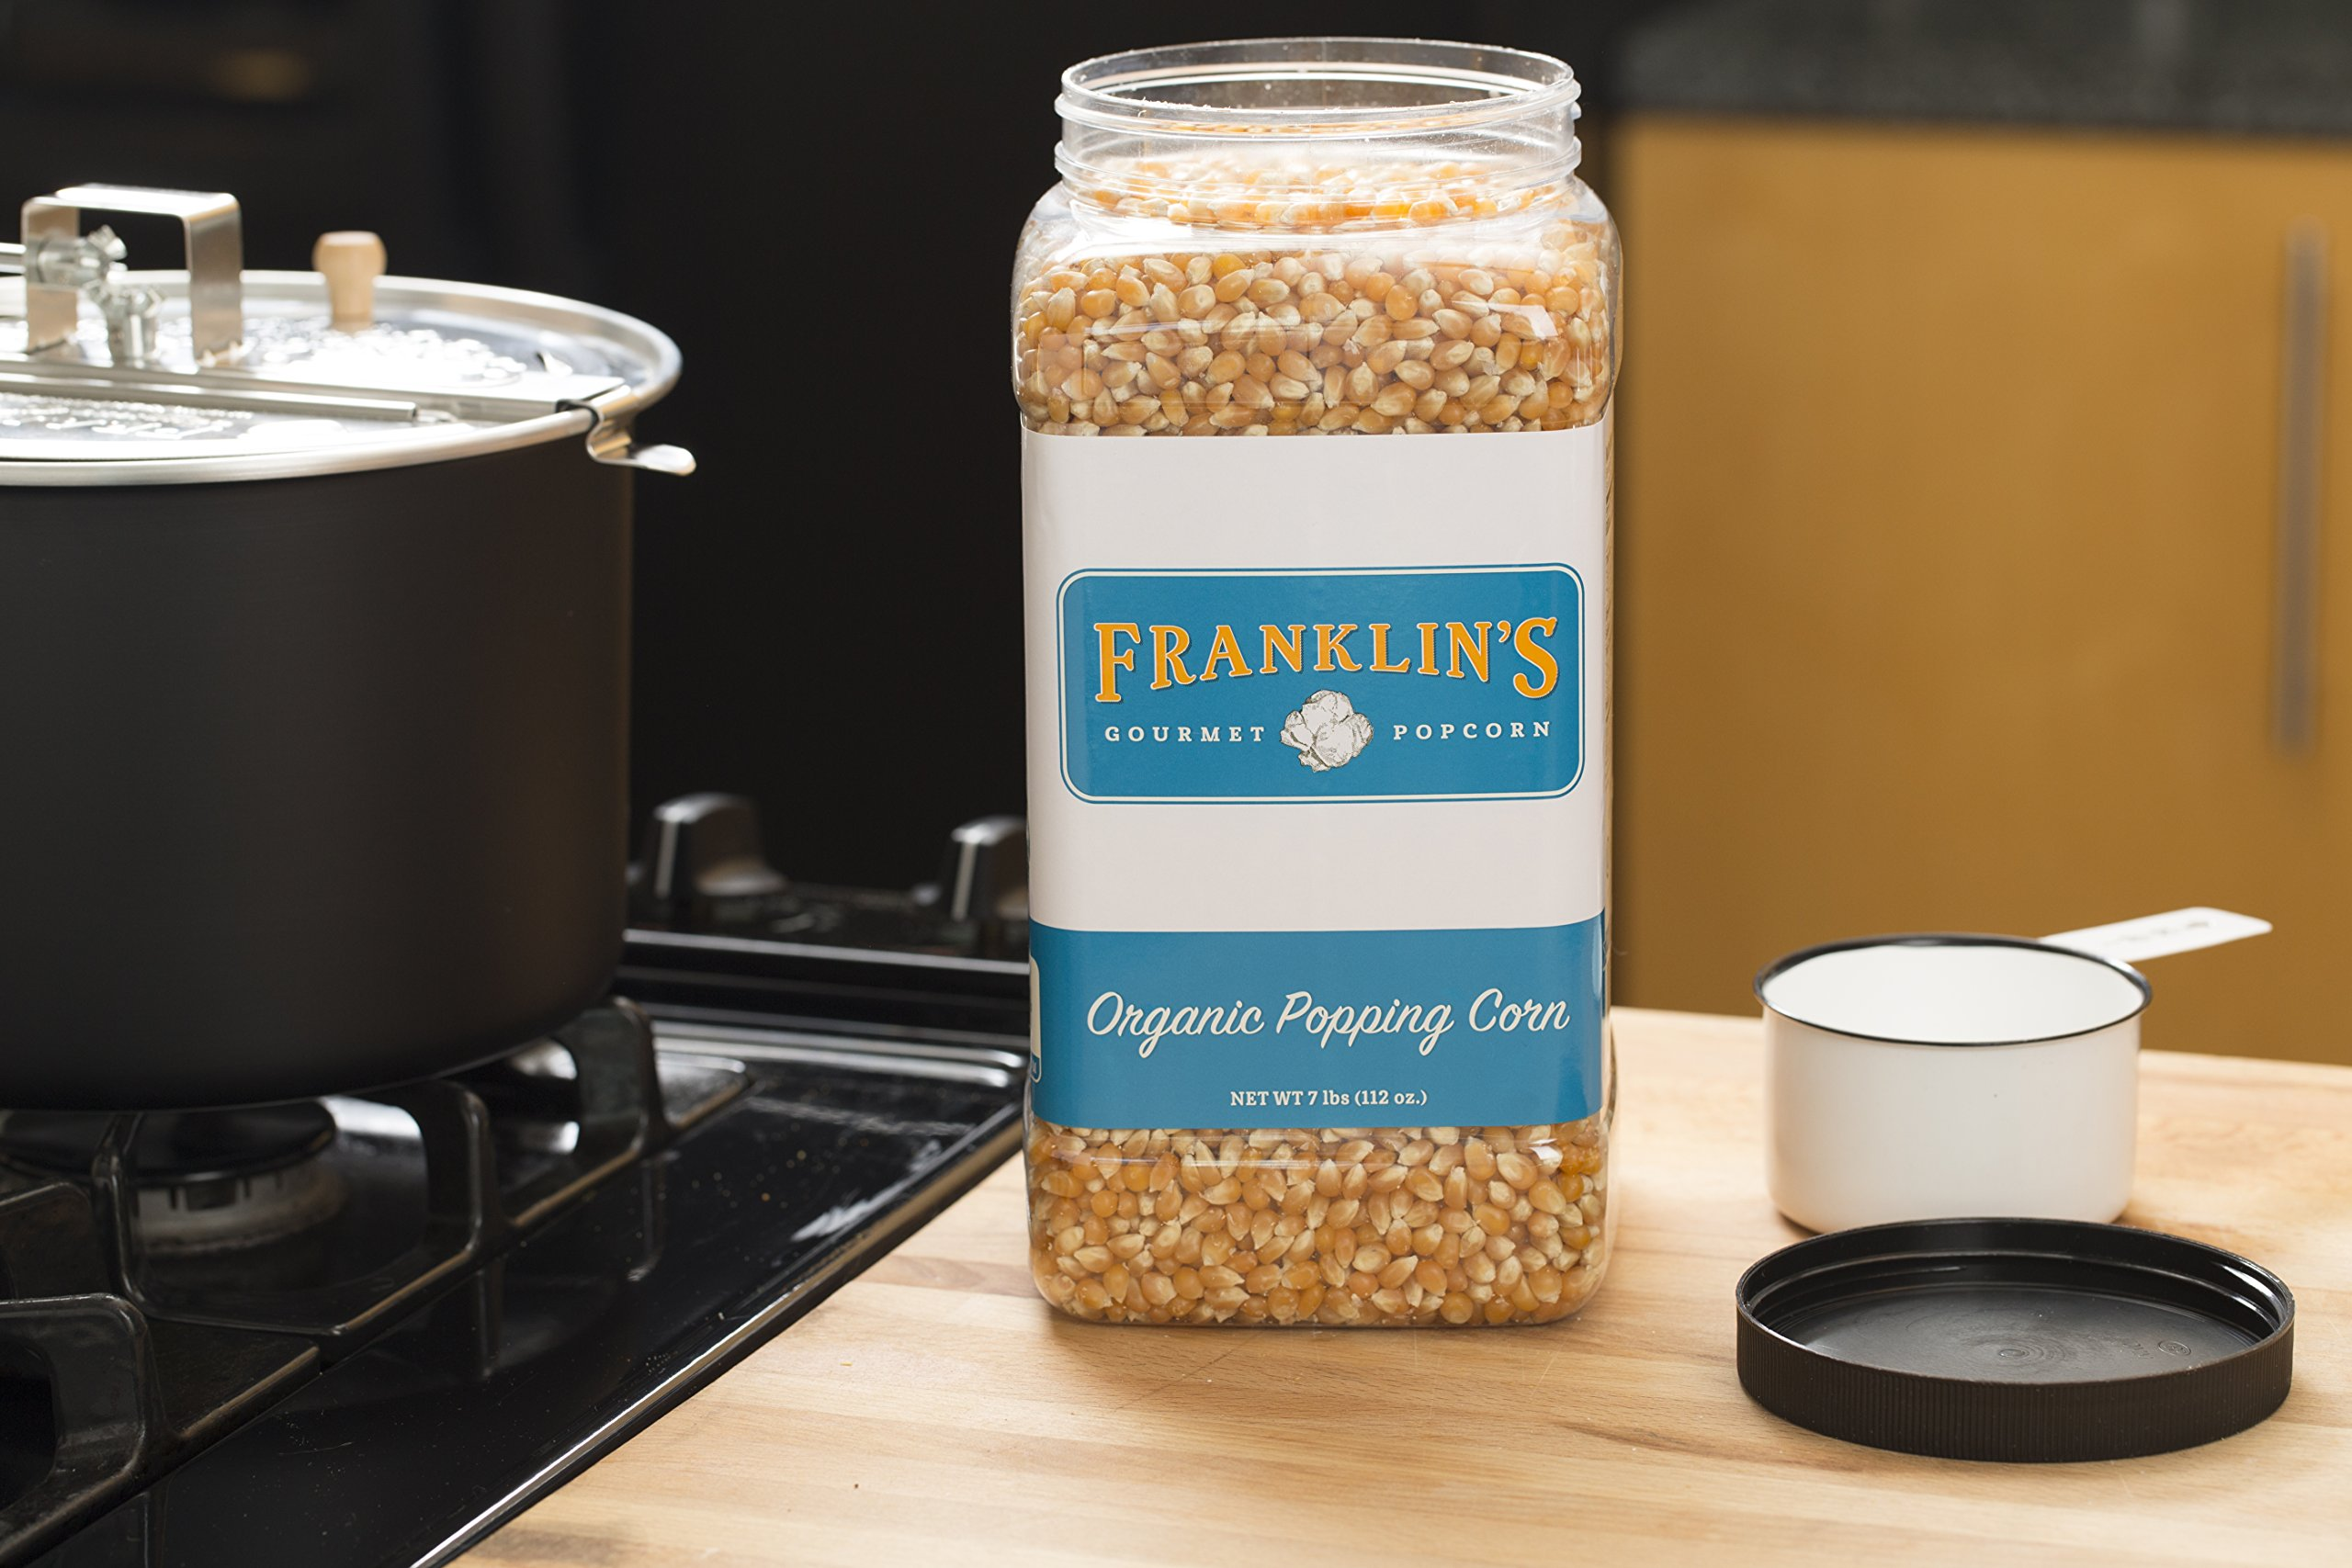 Franklin's Organic Popping Corn (7 lbs). Make Movie Theater Popcorn at Home. by Franklin's Gourmet Popcorn (Image #5)